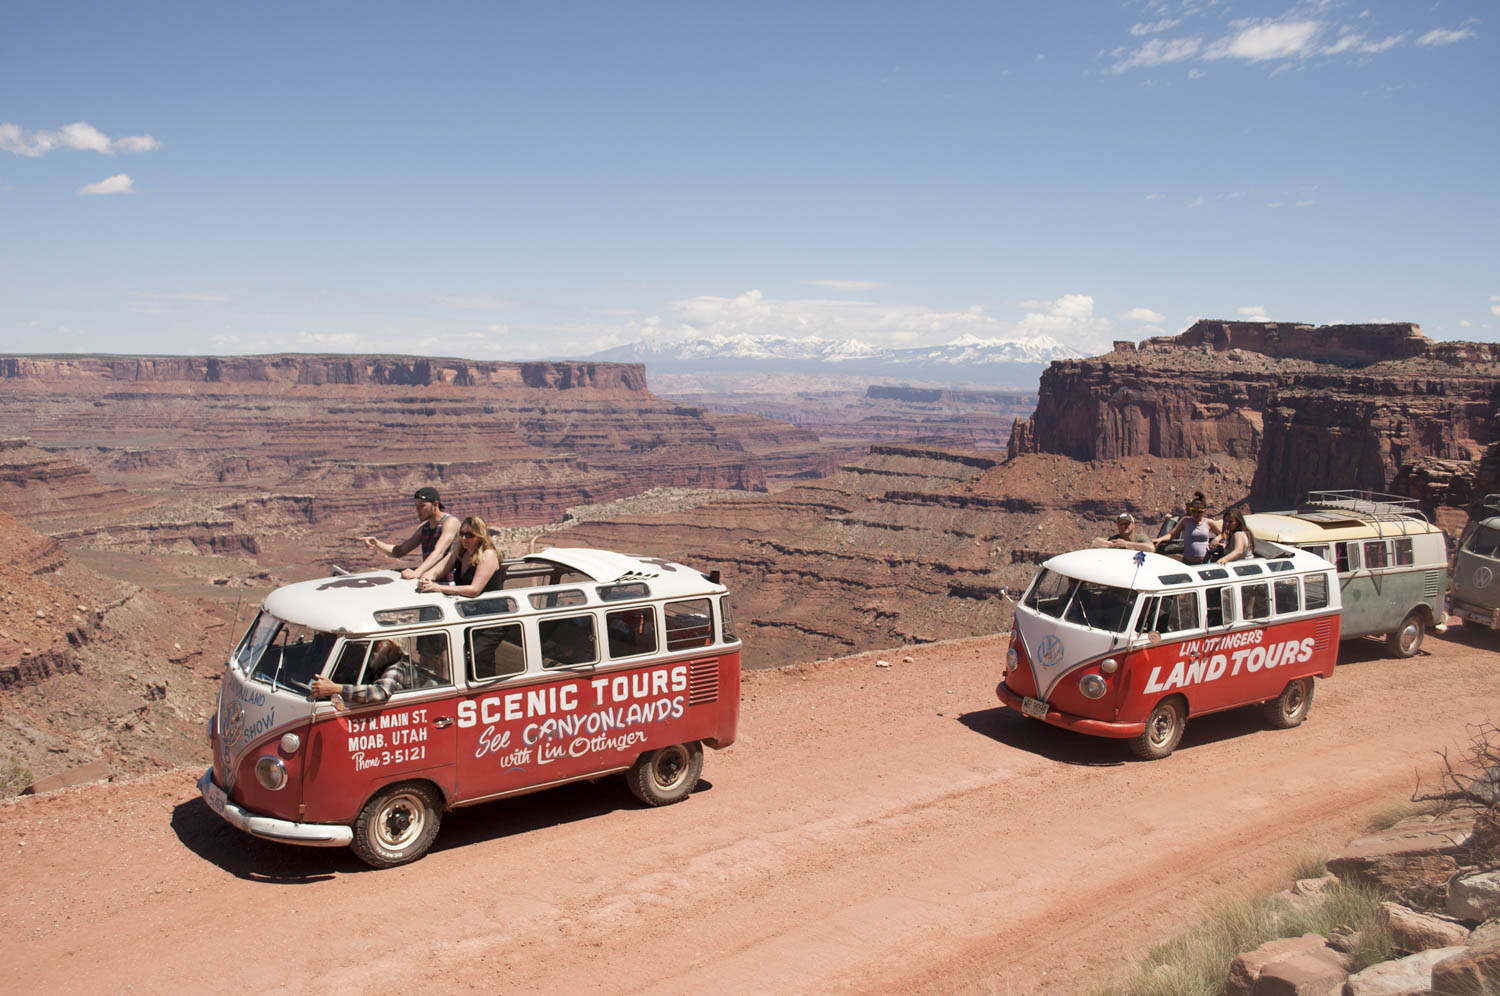 Volkswagen moab tour buses